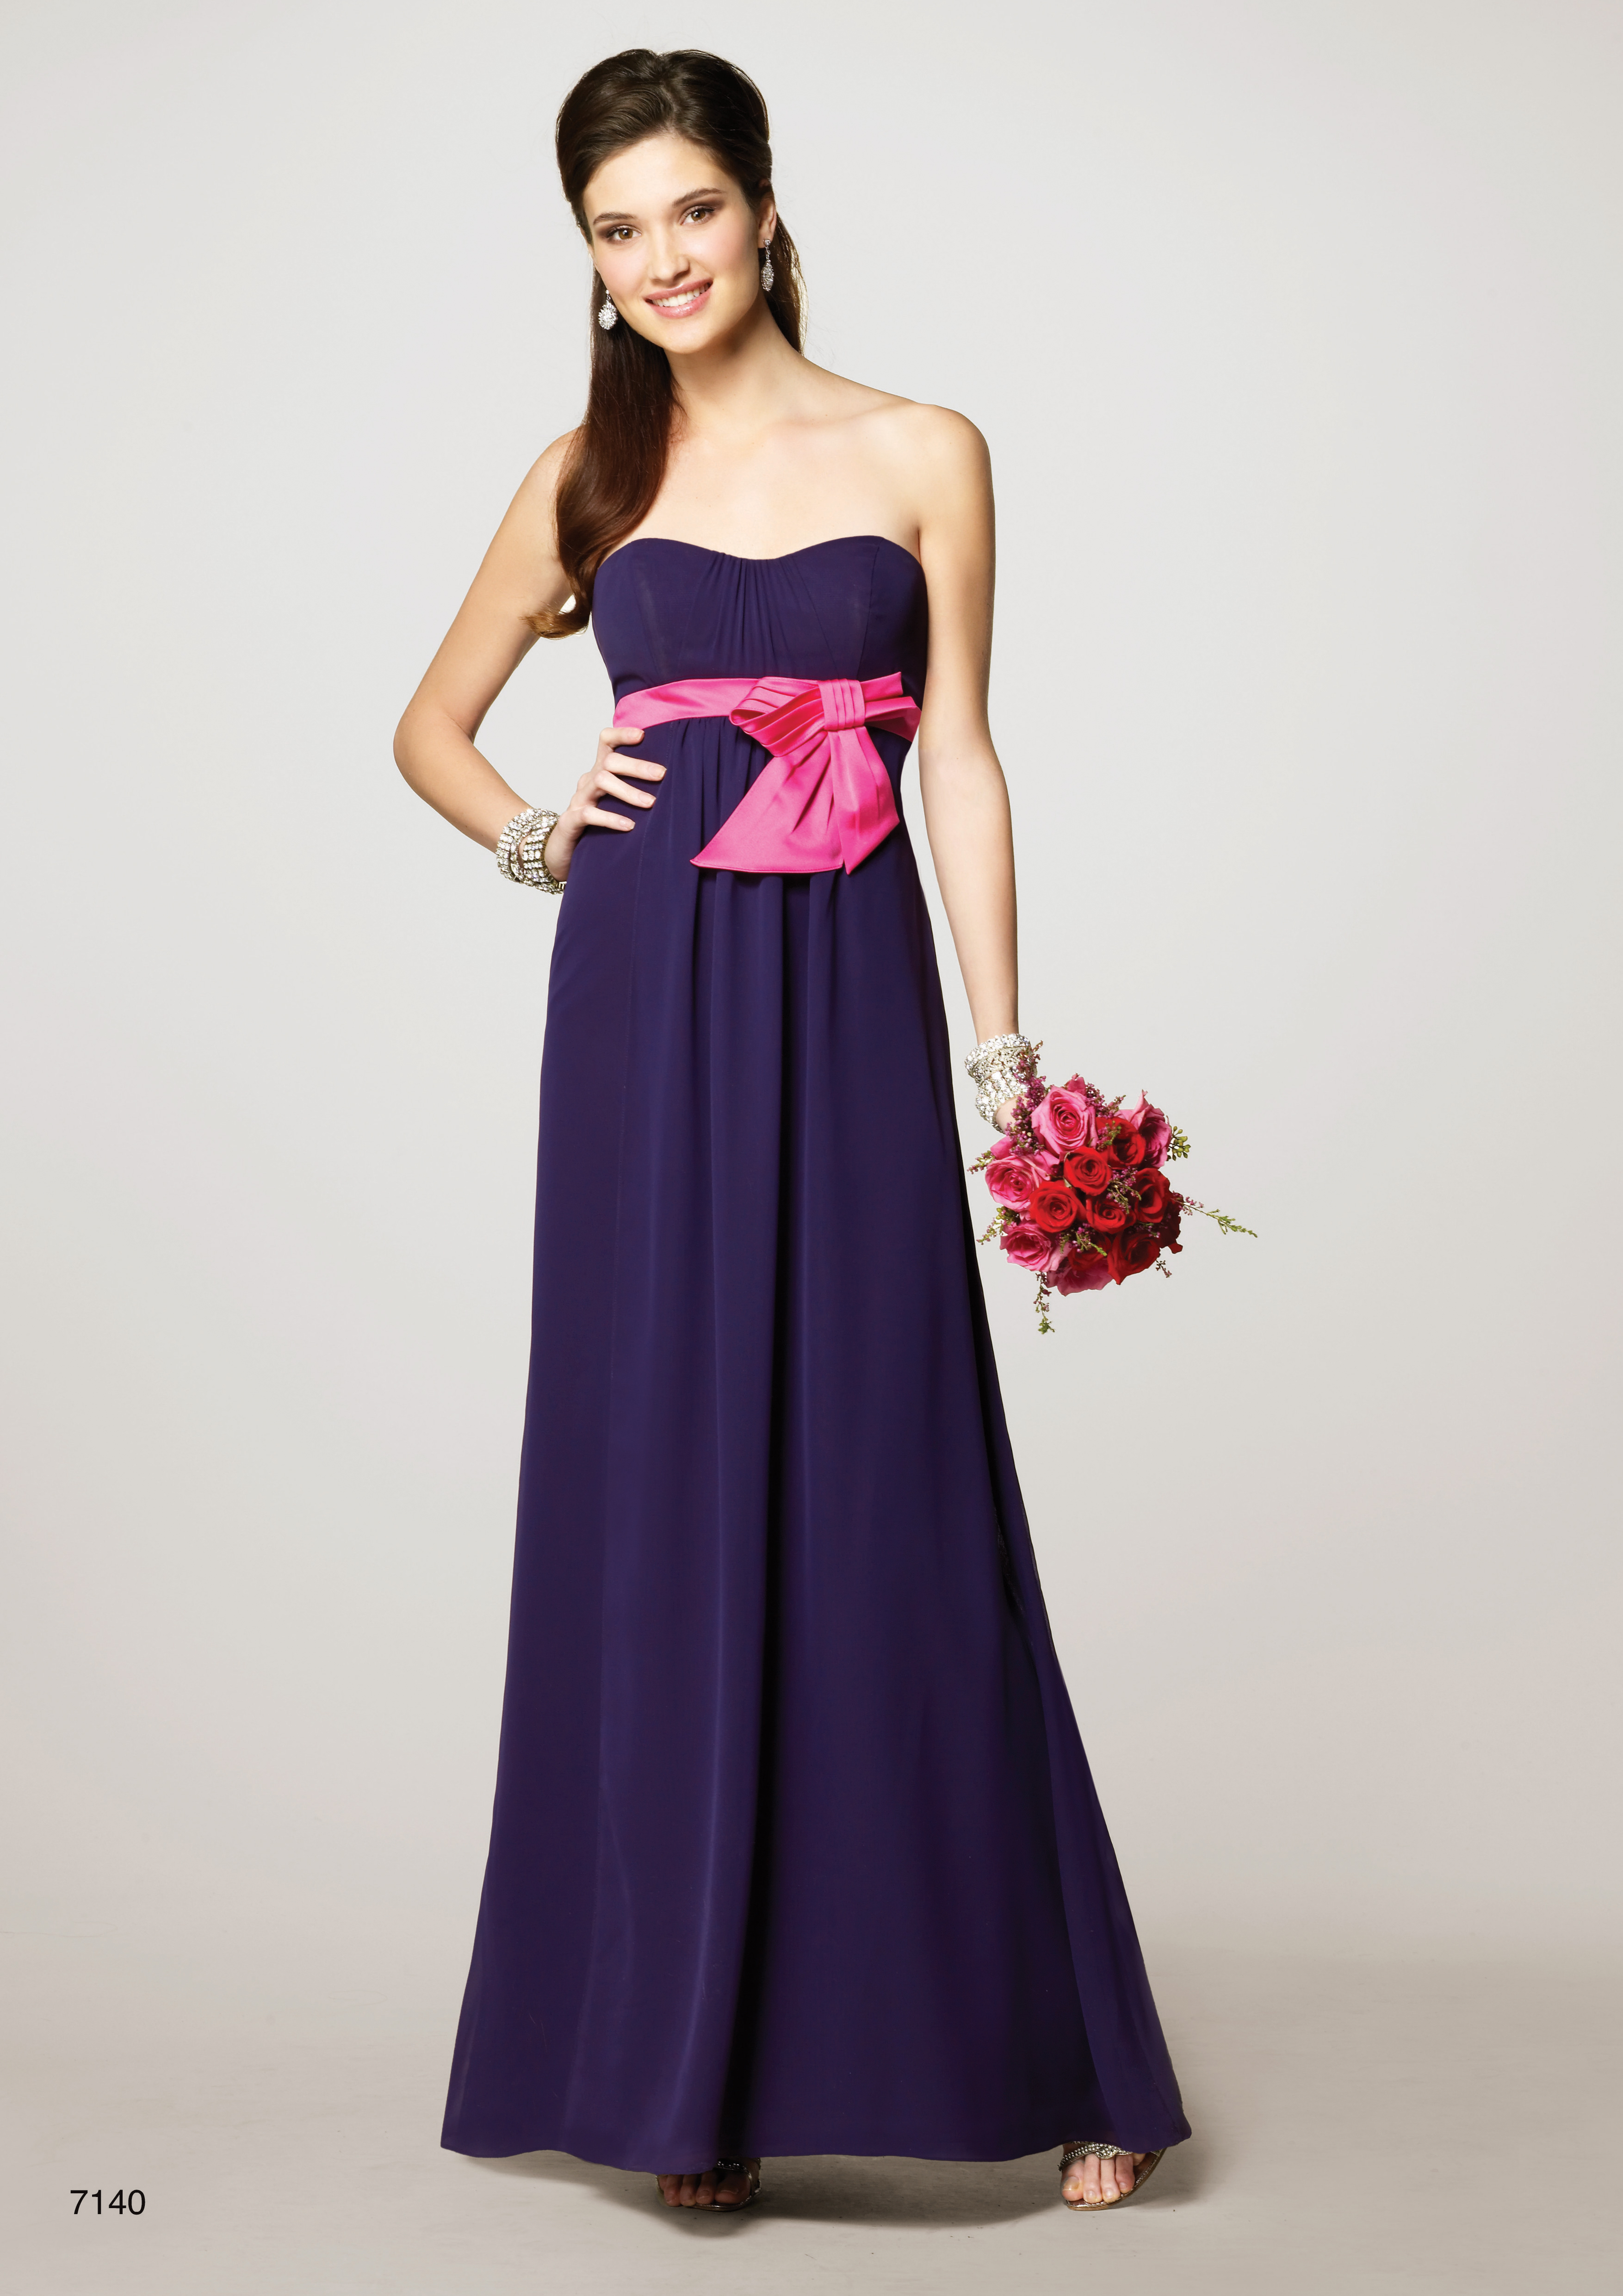 Alfred angelo gown 7140 a z wedding services alfred angelo gown 7140 ombrellifo Gallery